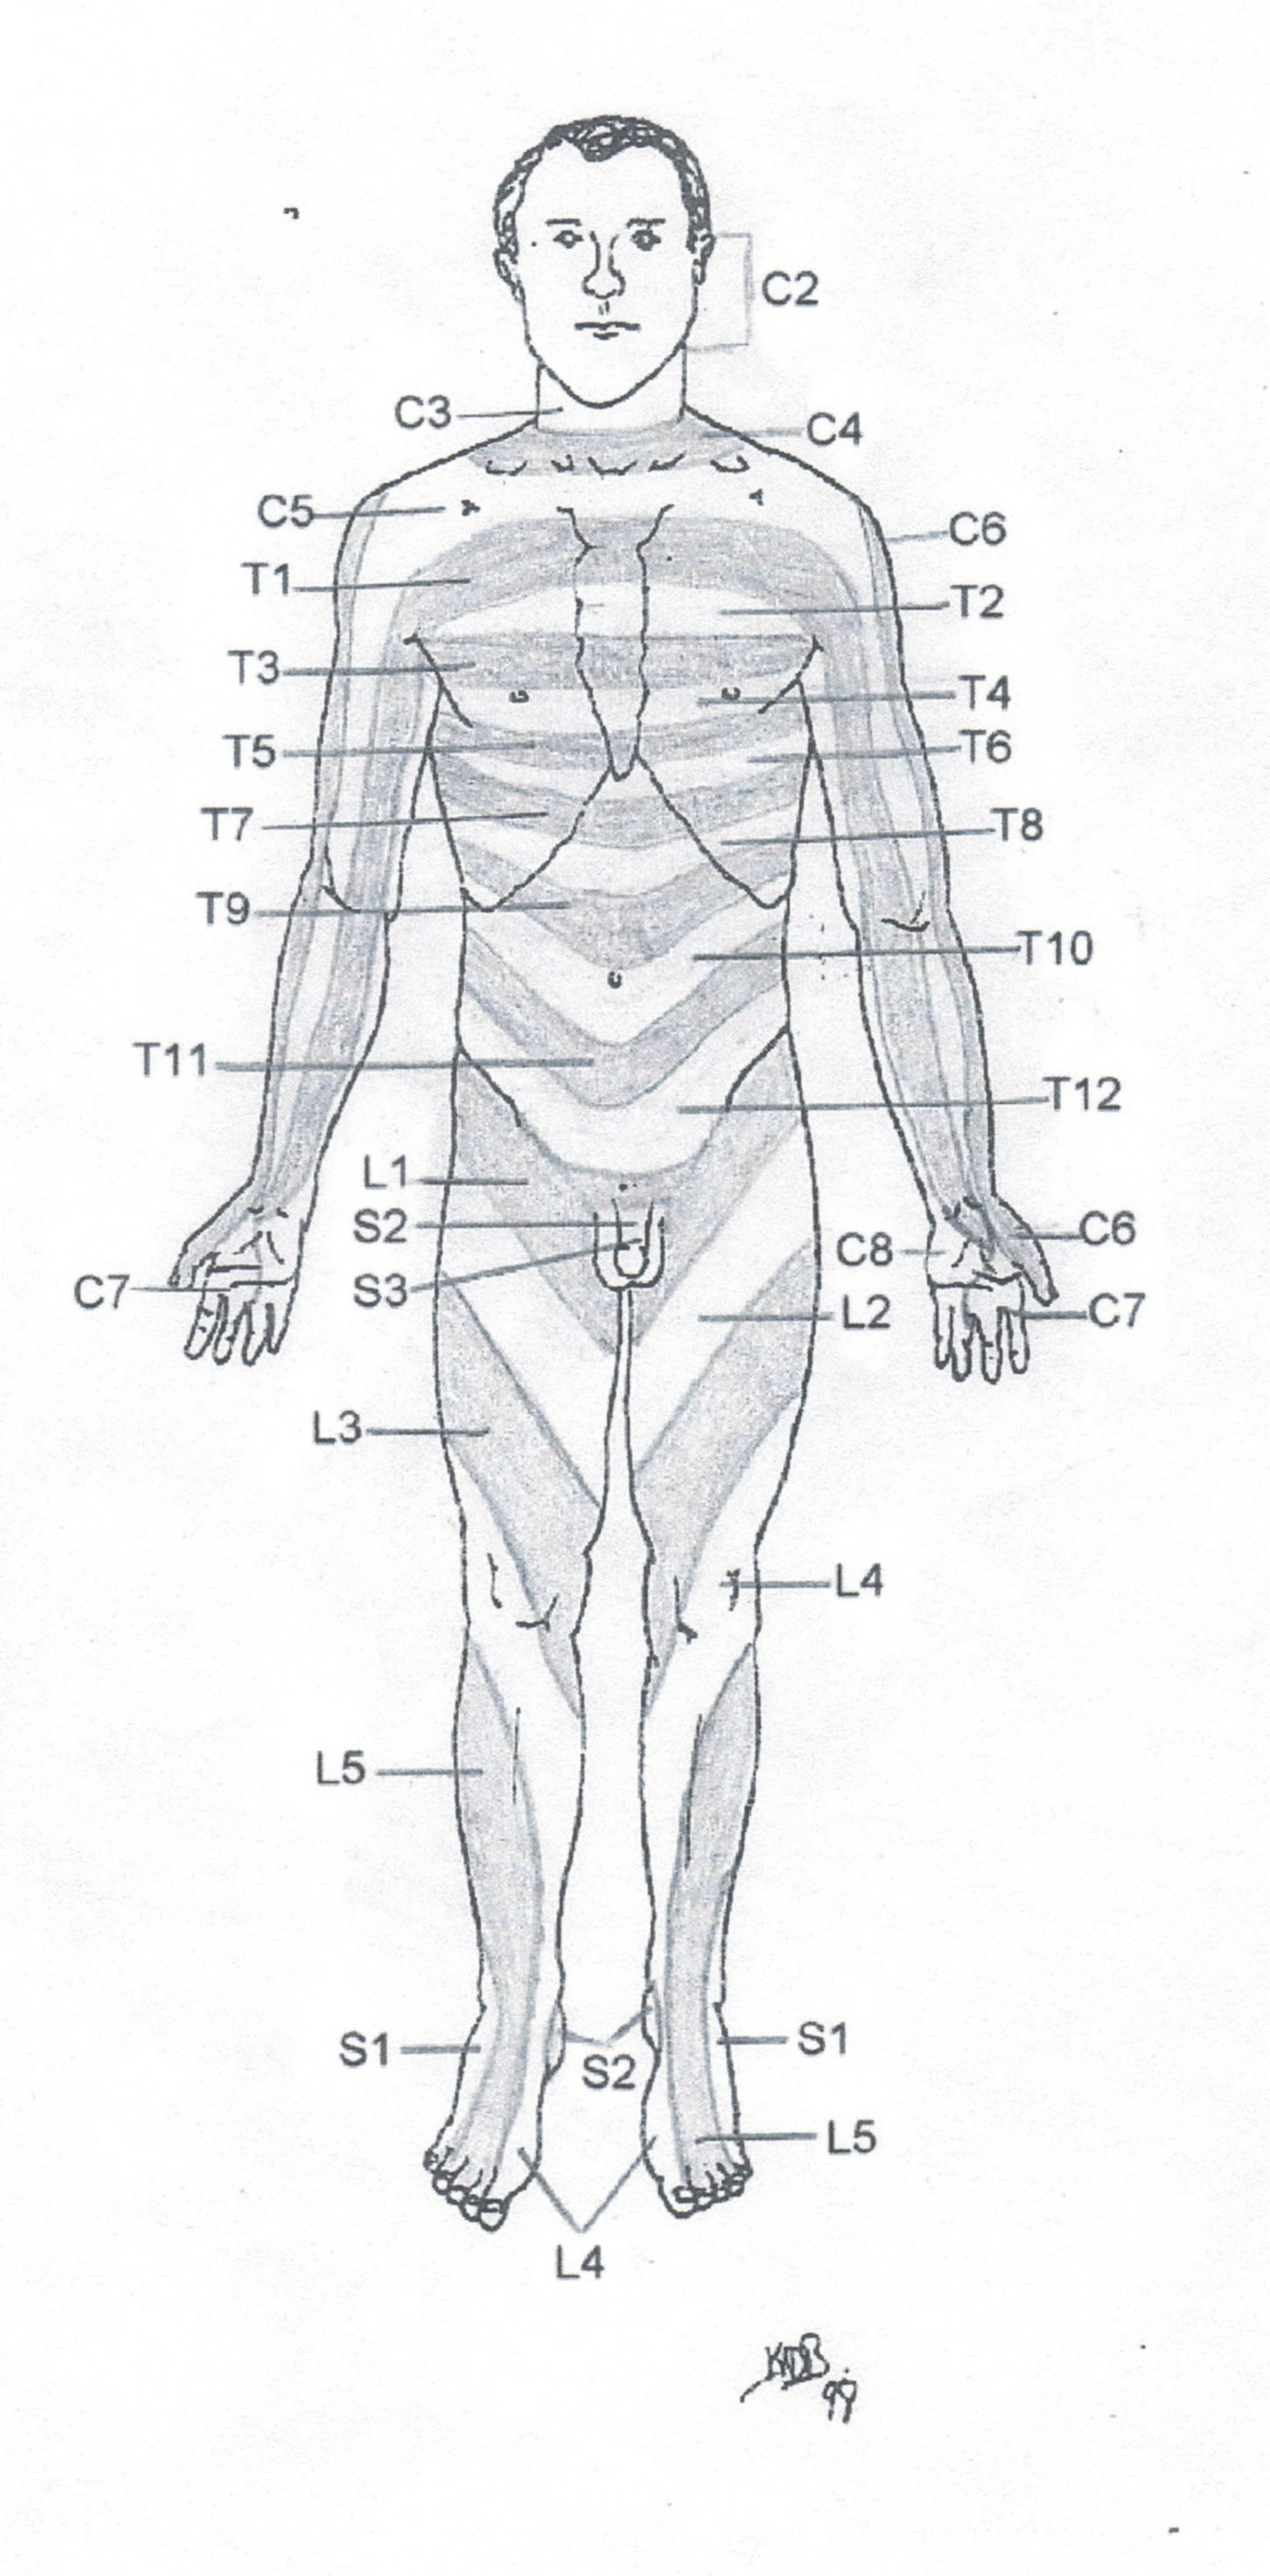 Dermatome Map http://www.webmanmed.com/painrefer_files/frntderm.html